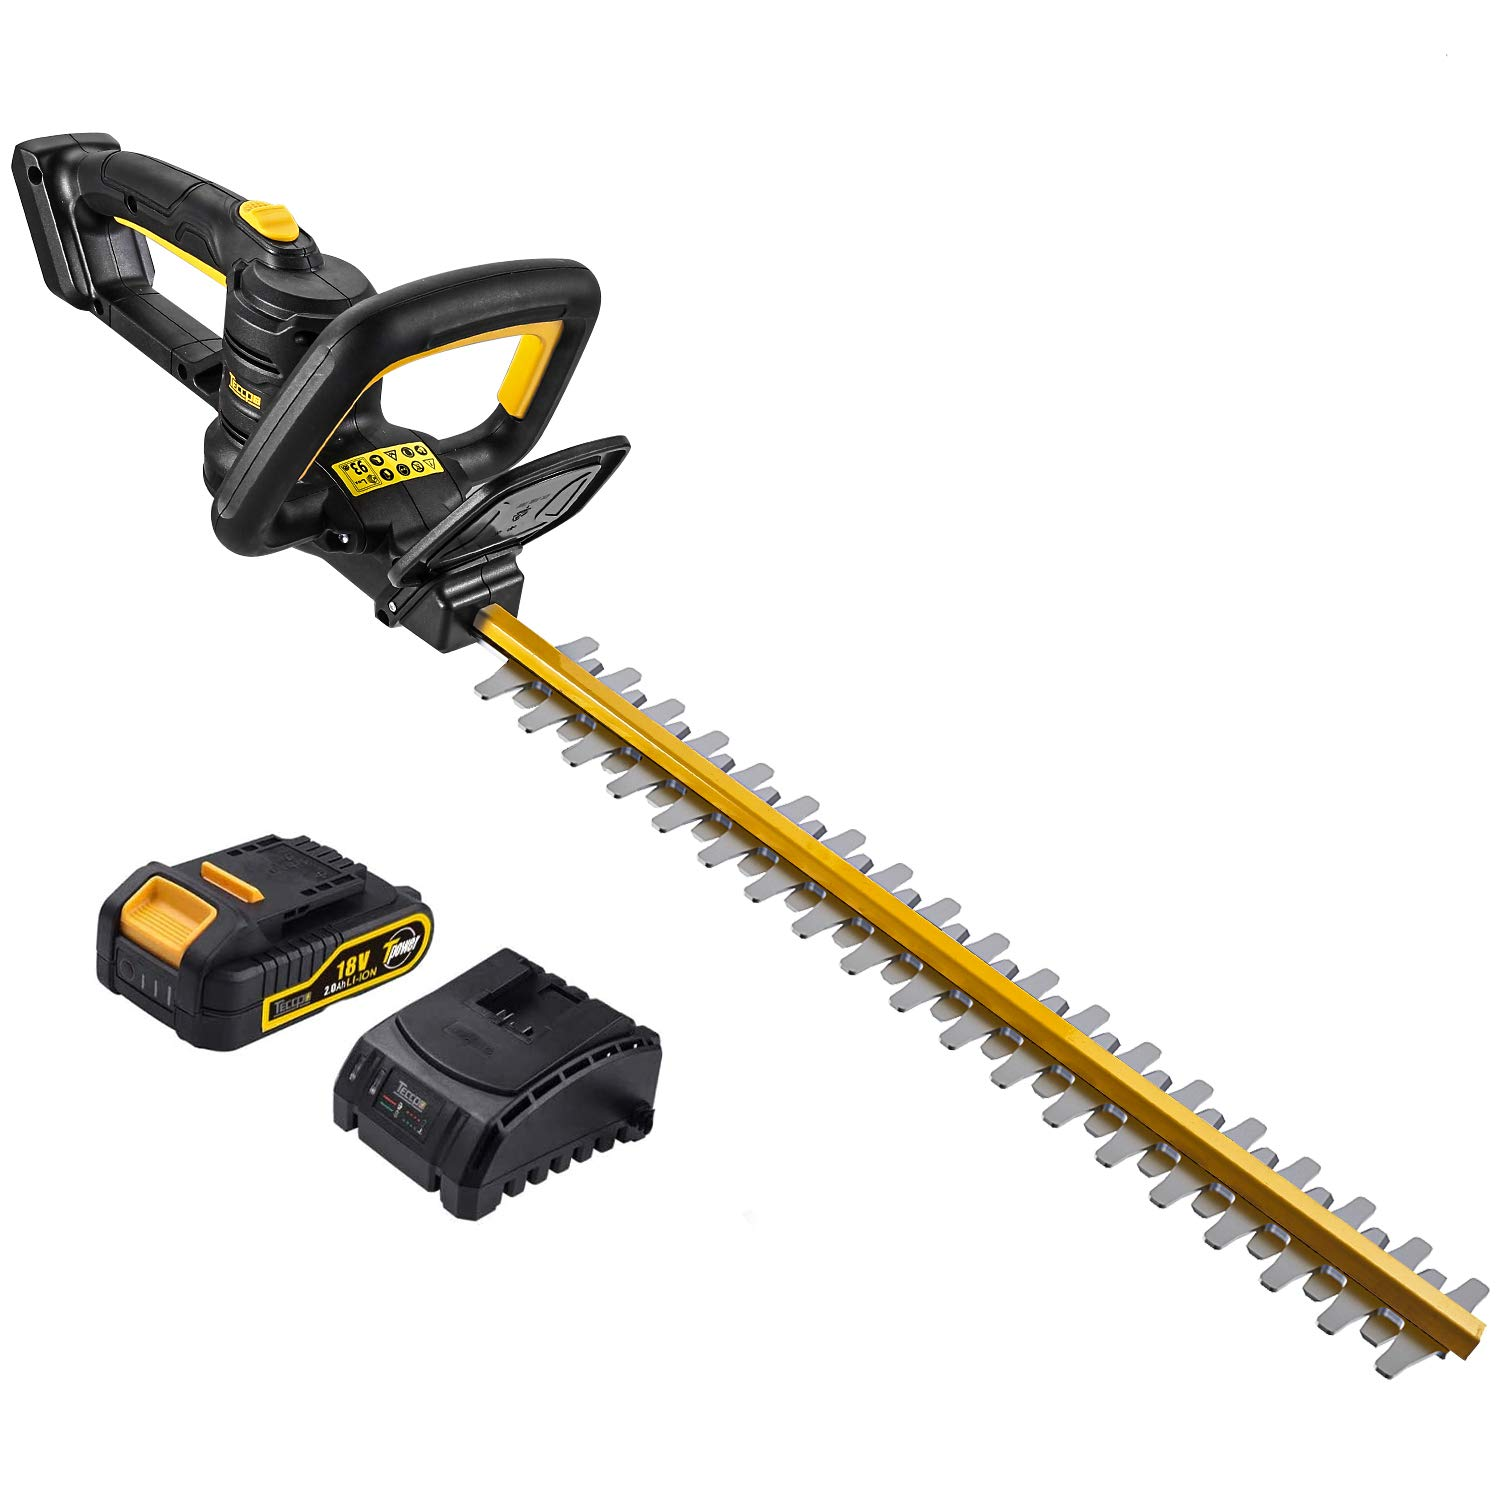 TECCPO Hedge Trimmer, Cordless Hedge Trimmer, 18V 2.0 Ah, with Battery and Charger, 520mm Blade Length, 18mm Cutting Gap, Dual Action Laser Blade & Diamond-ground Blades -TDHT02G